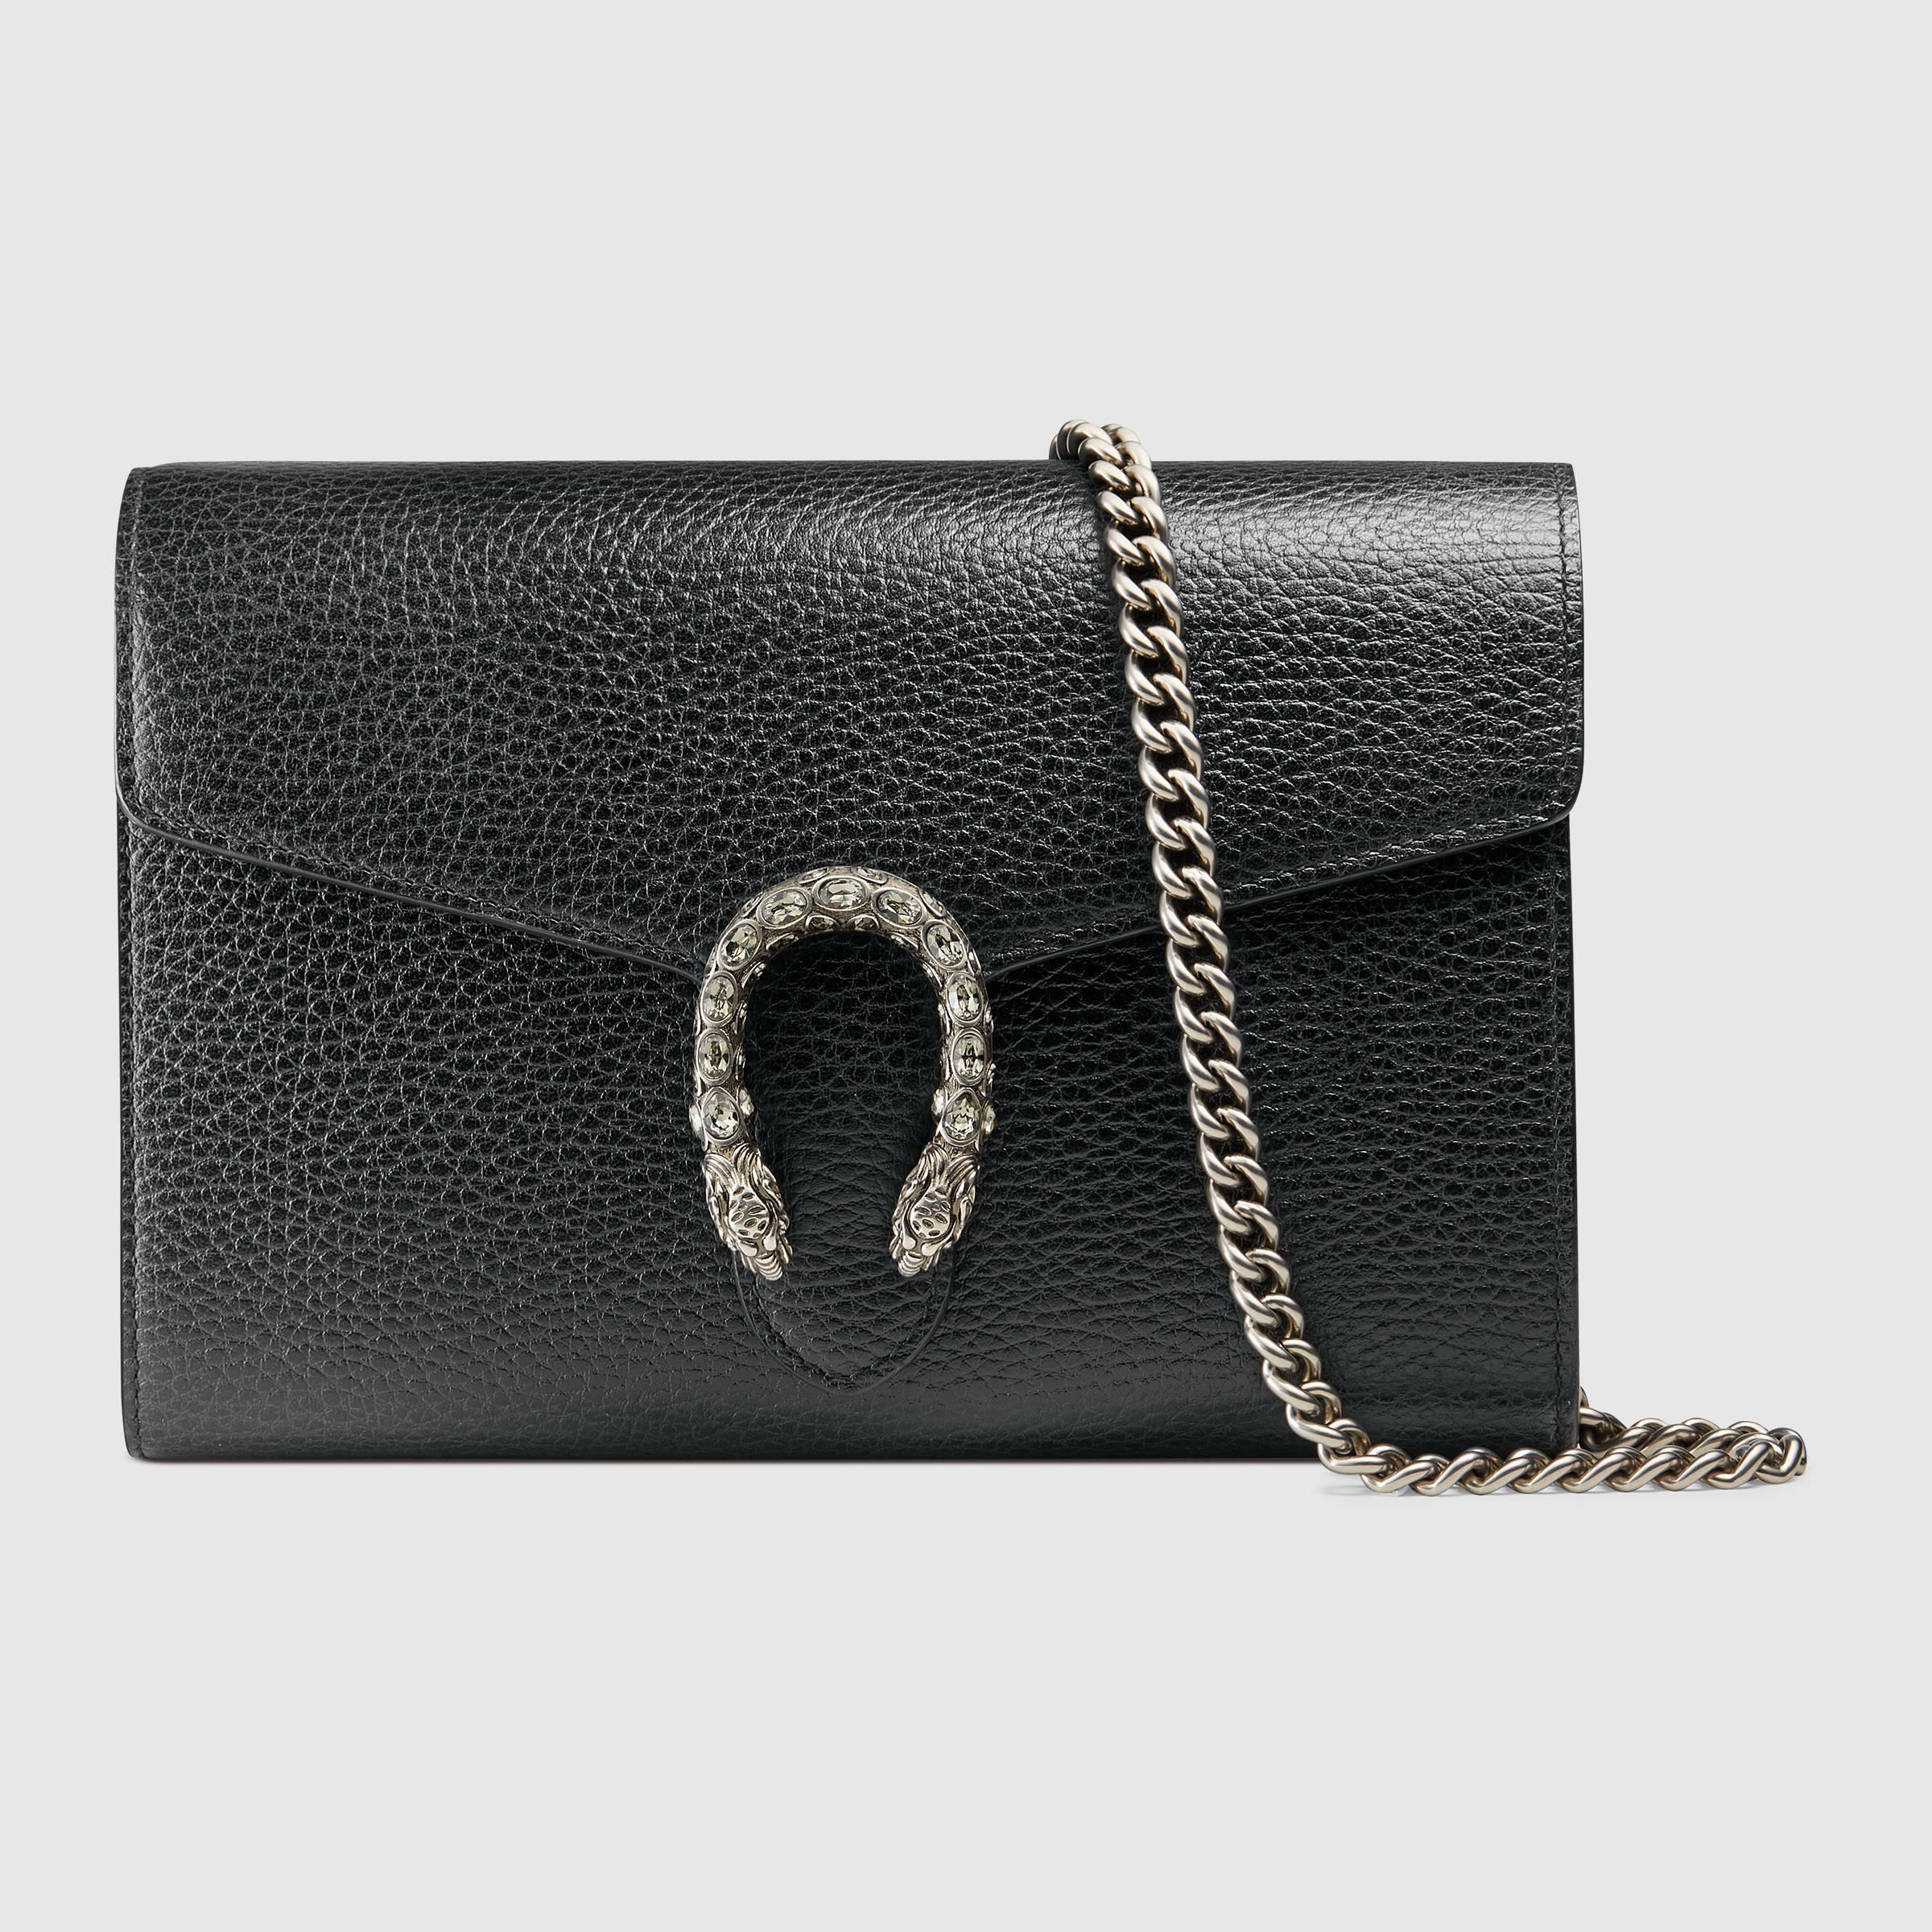 gucci dionysus leather mini chain bag in black lyst. Black Bedroom Furniture Sets. Home Design Ideas